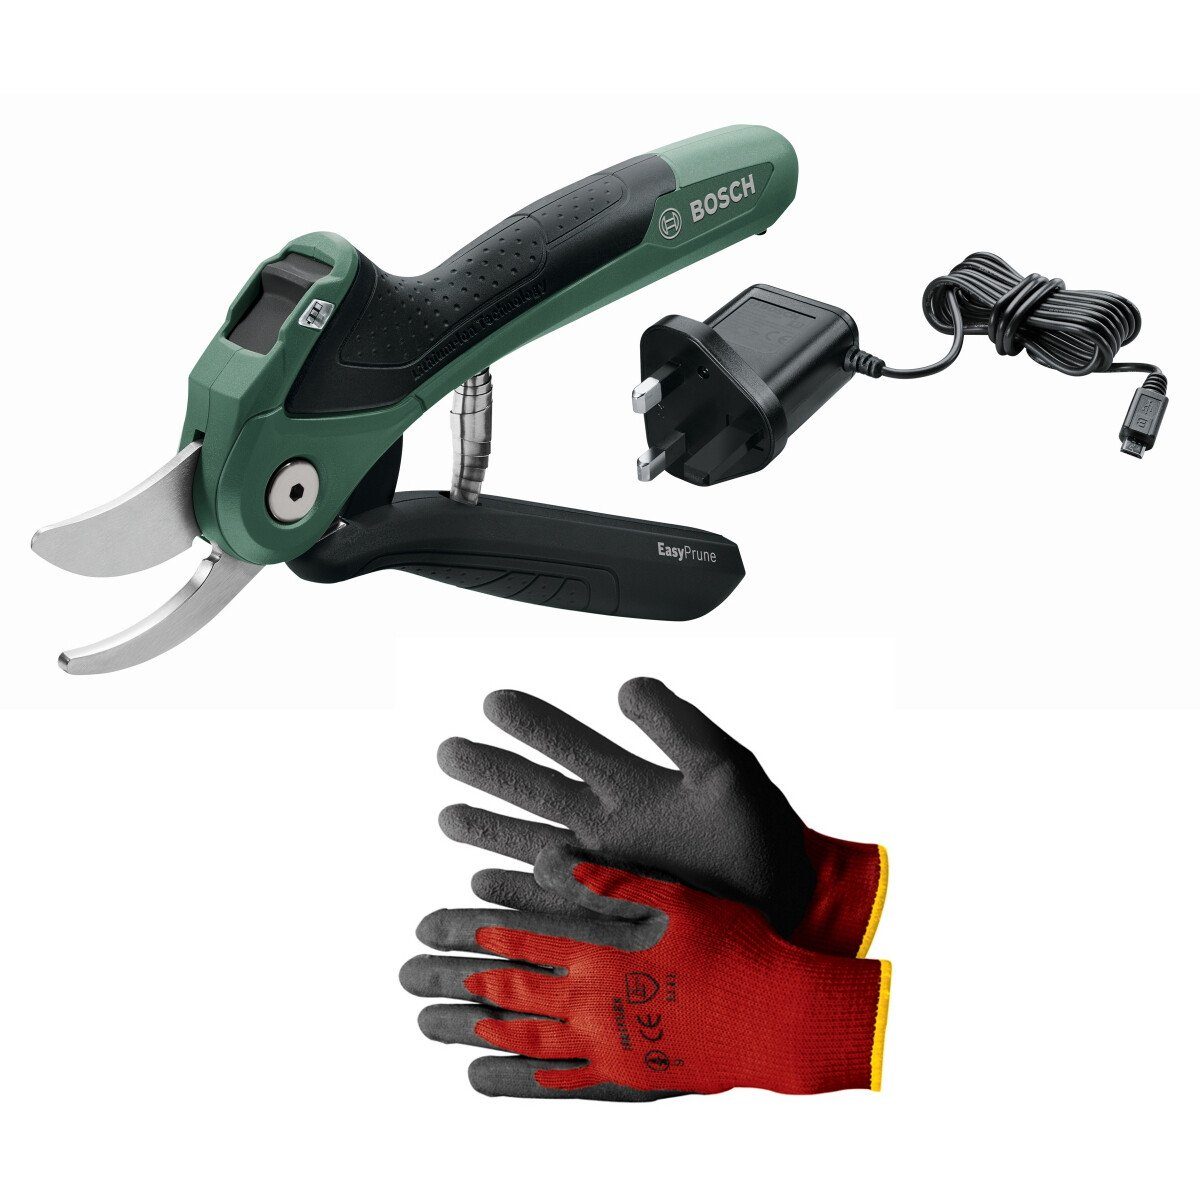 Bosch EasyPrune 3.6v Secateur with Gloves